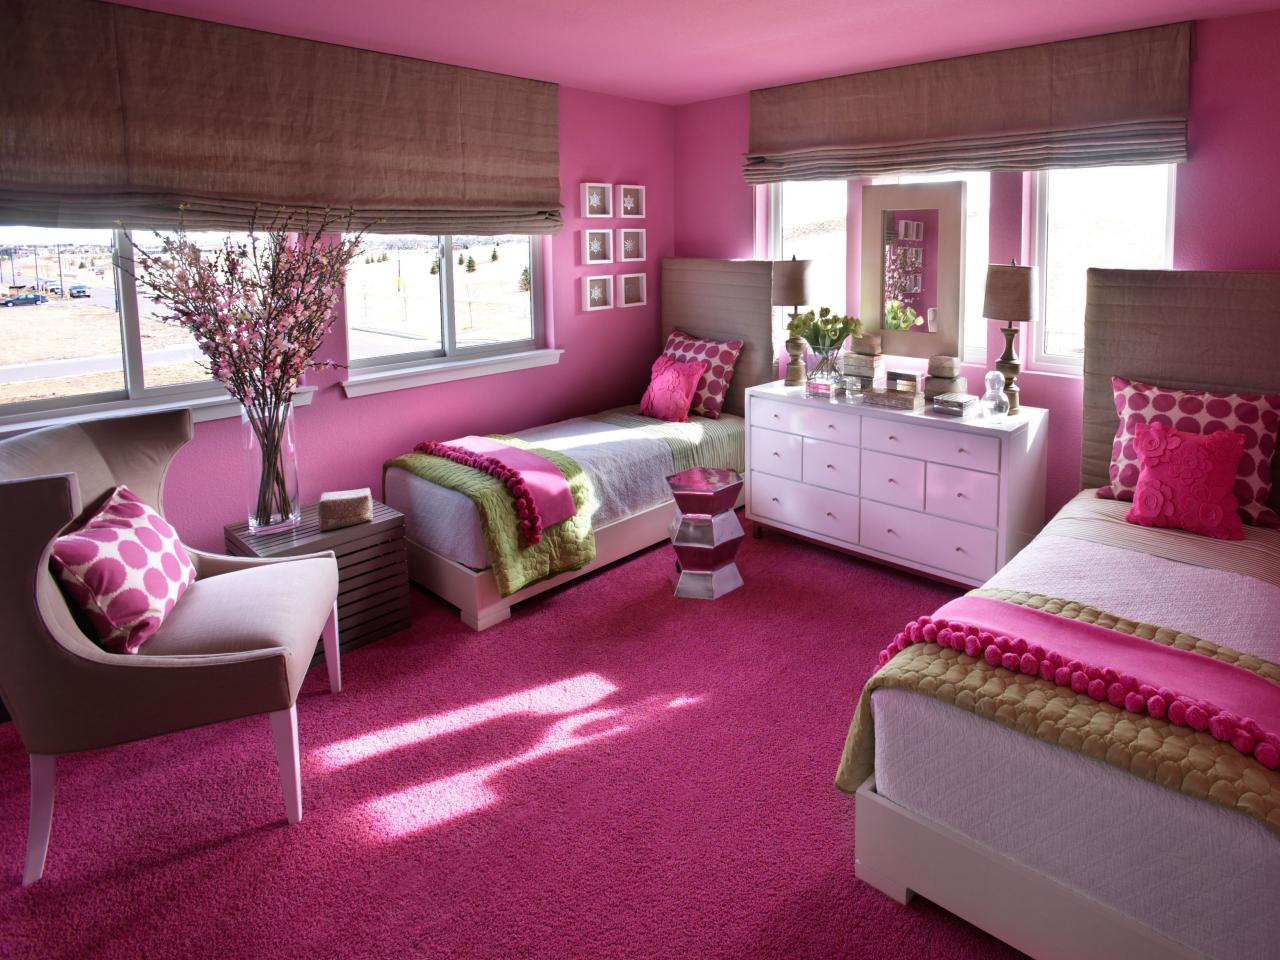 Wall paint colors for girls bedroom - Tags